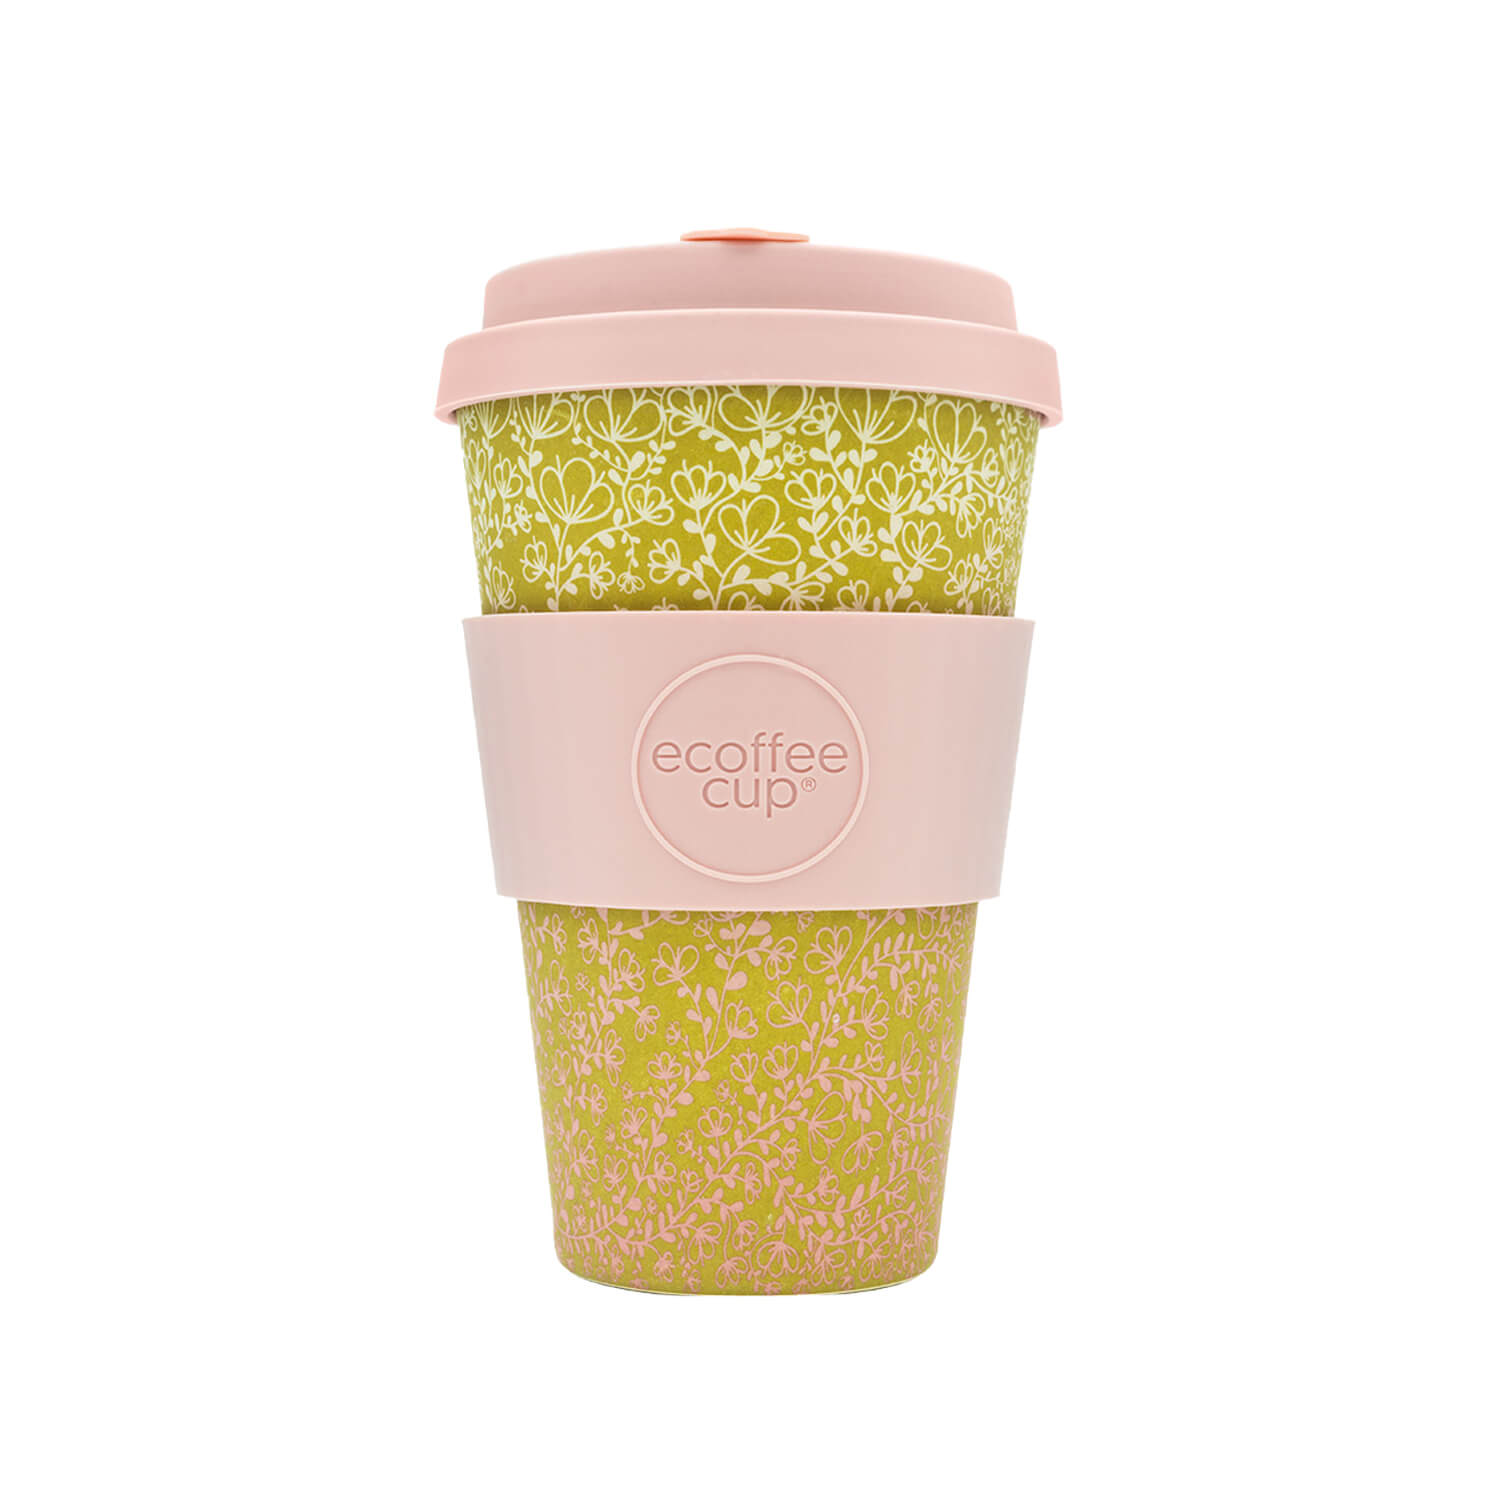 Ecoffee cup - Miscoso primo - 400 ml